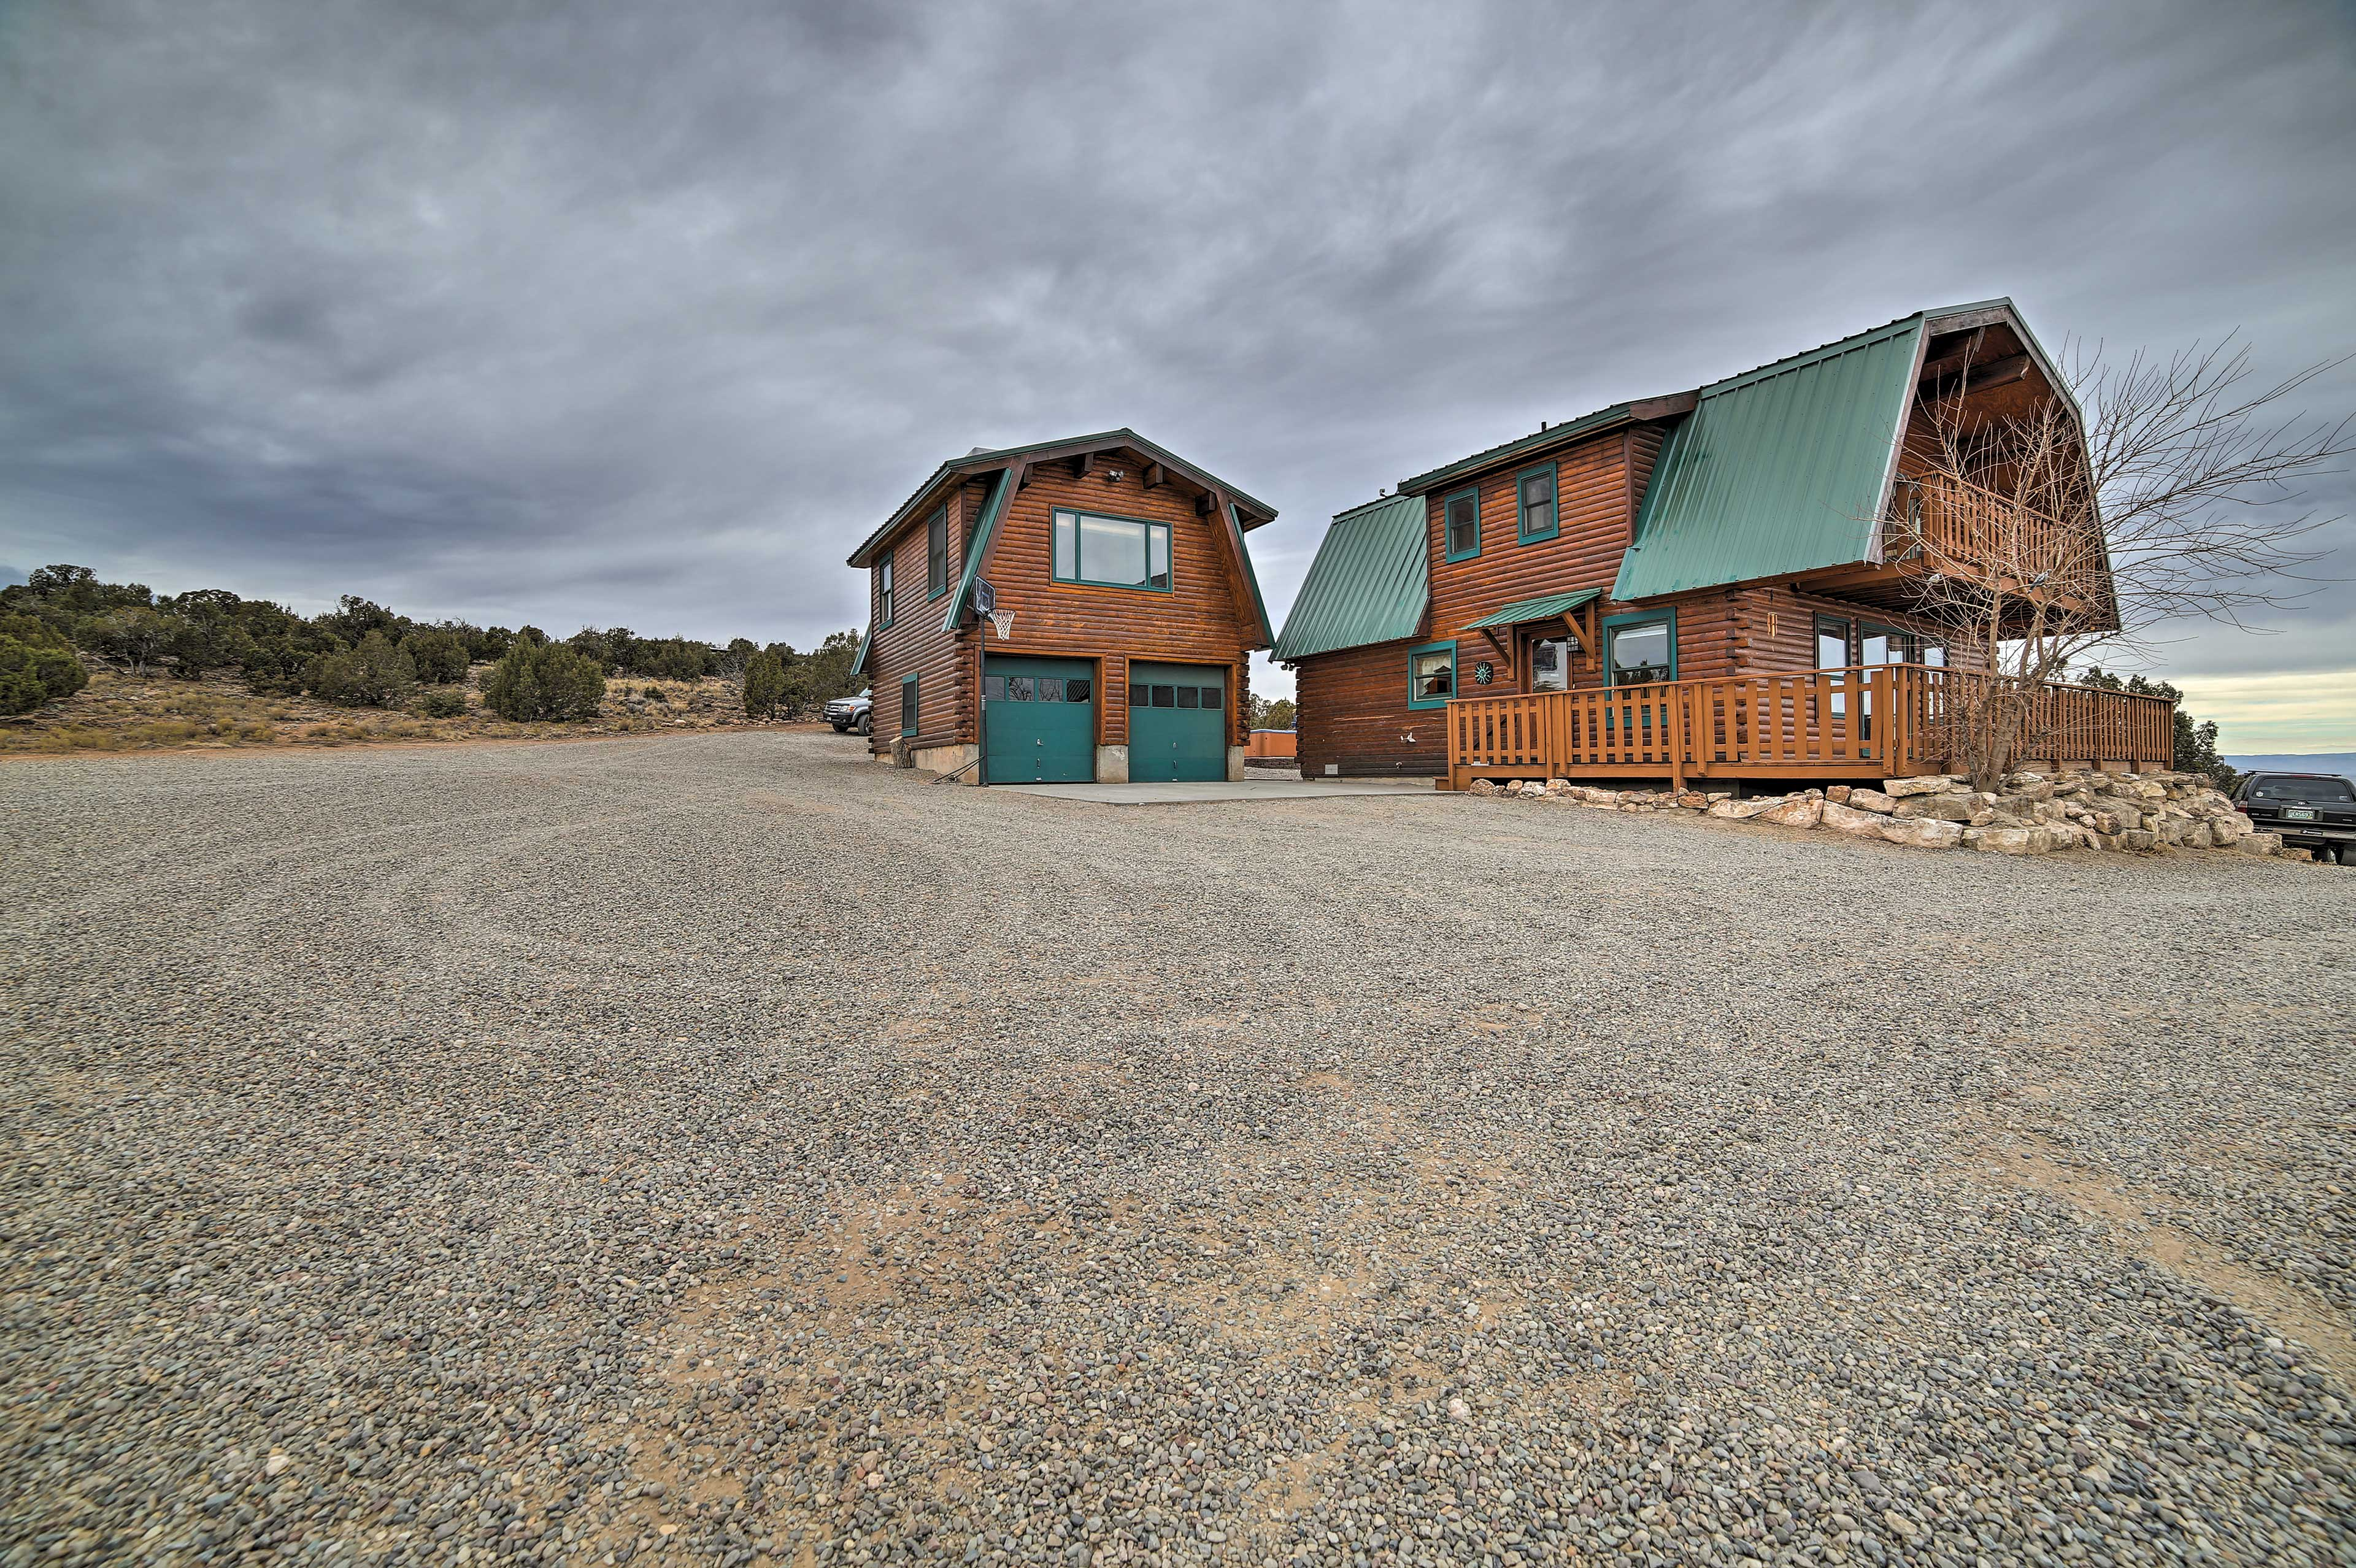 This mountain house is the perfect destination for your next Colorado escape.